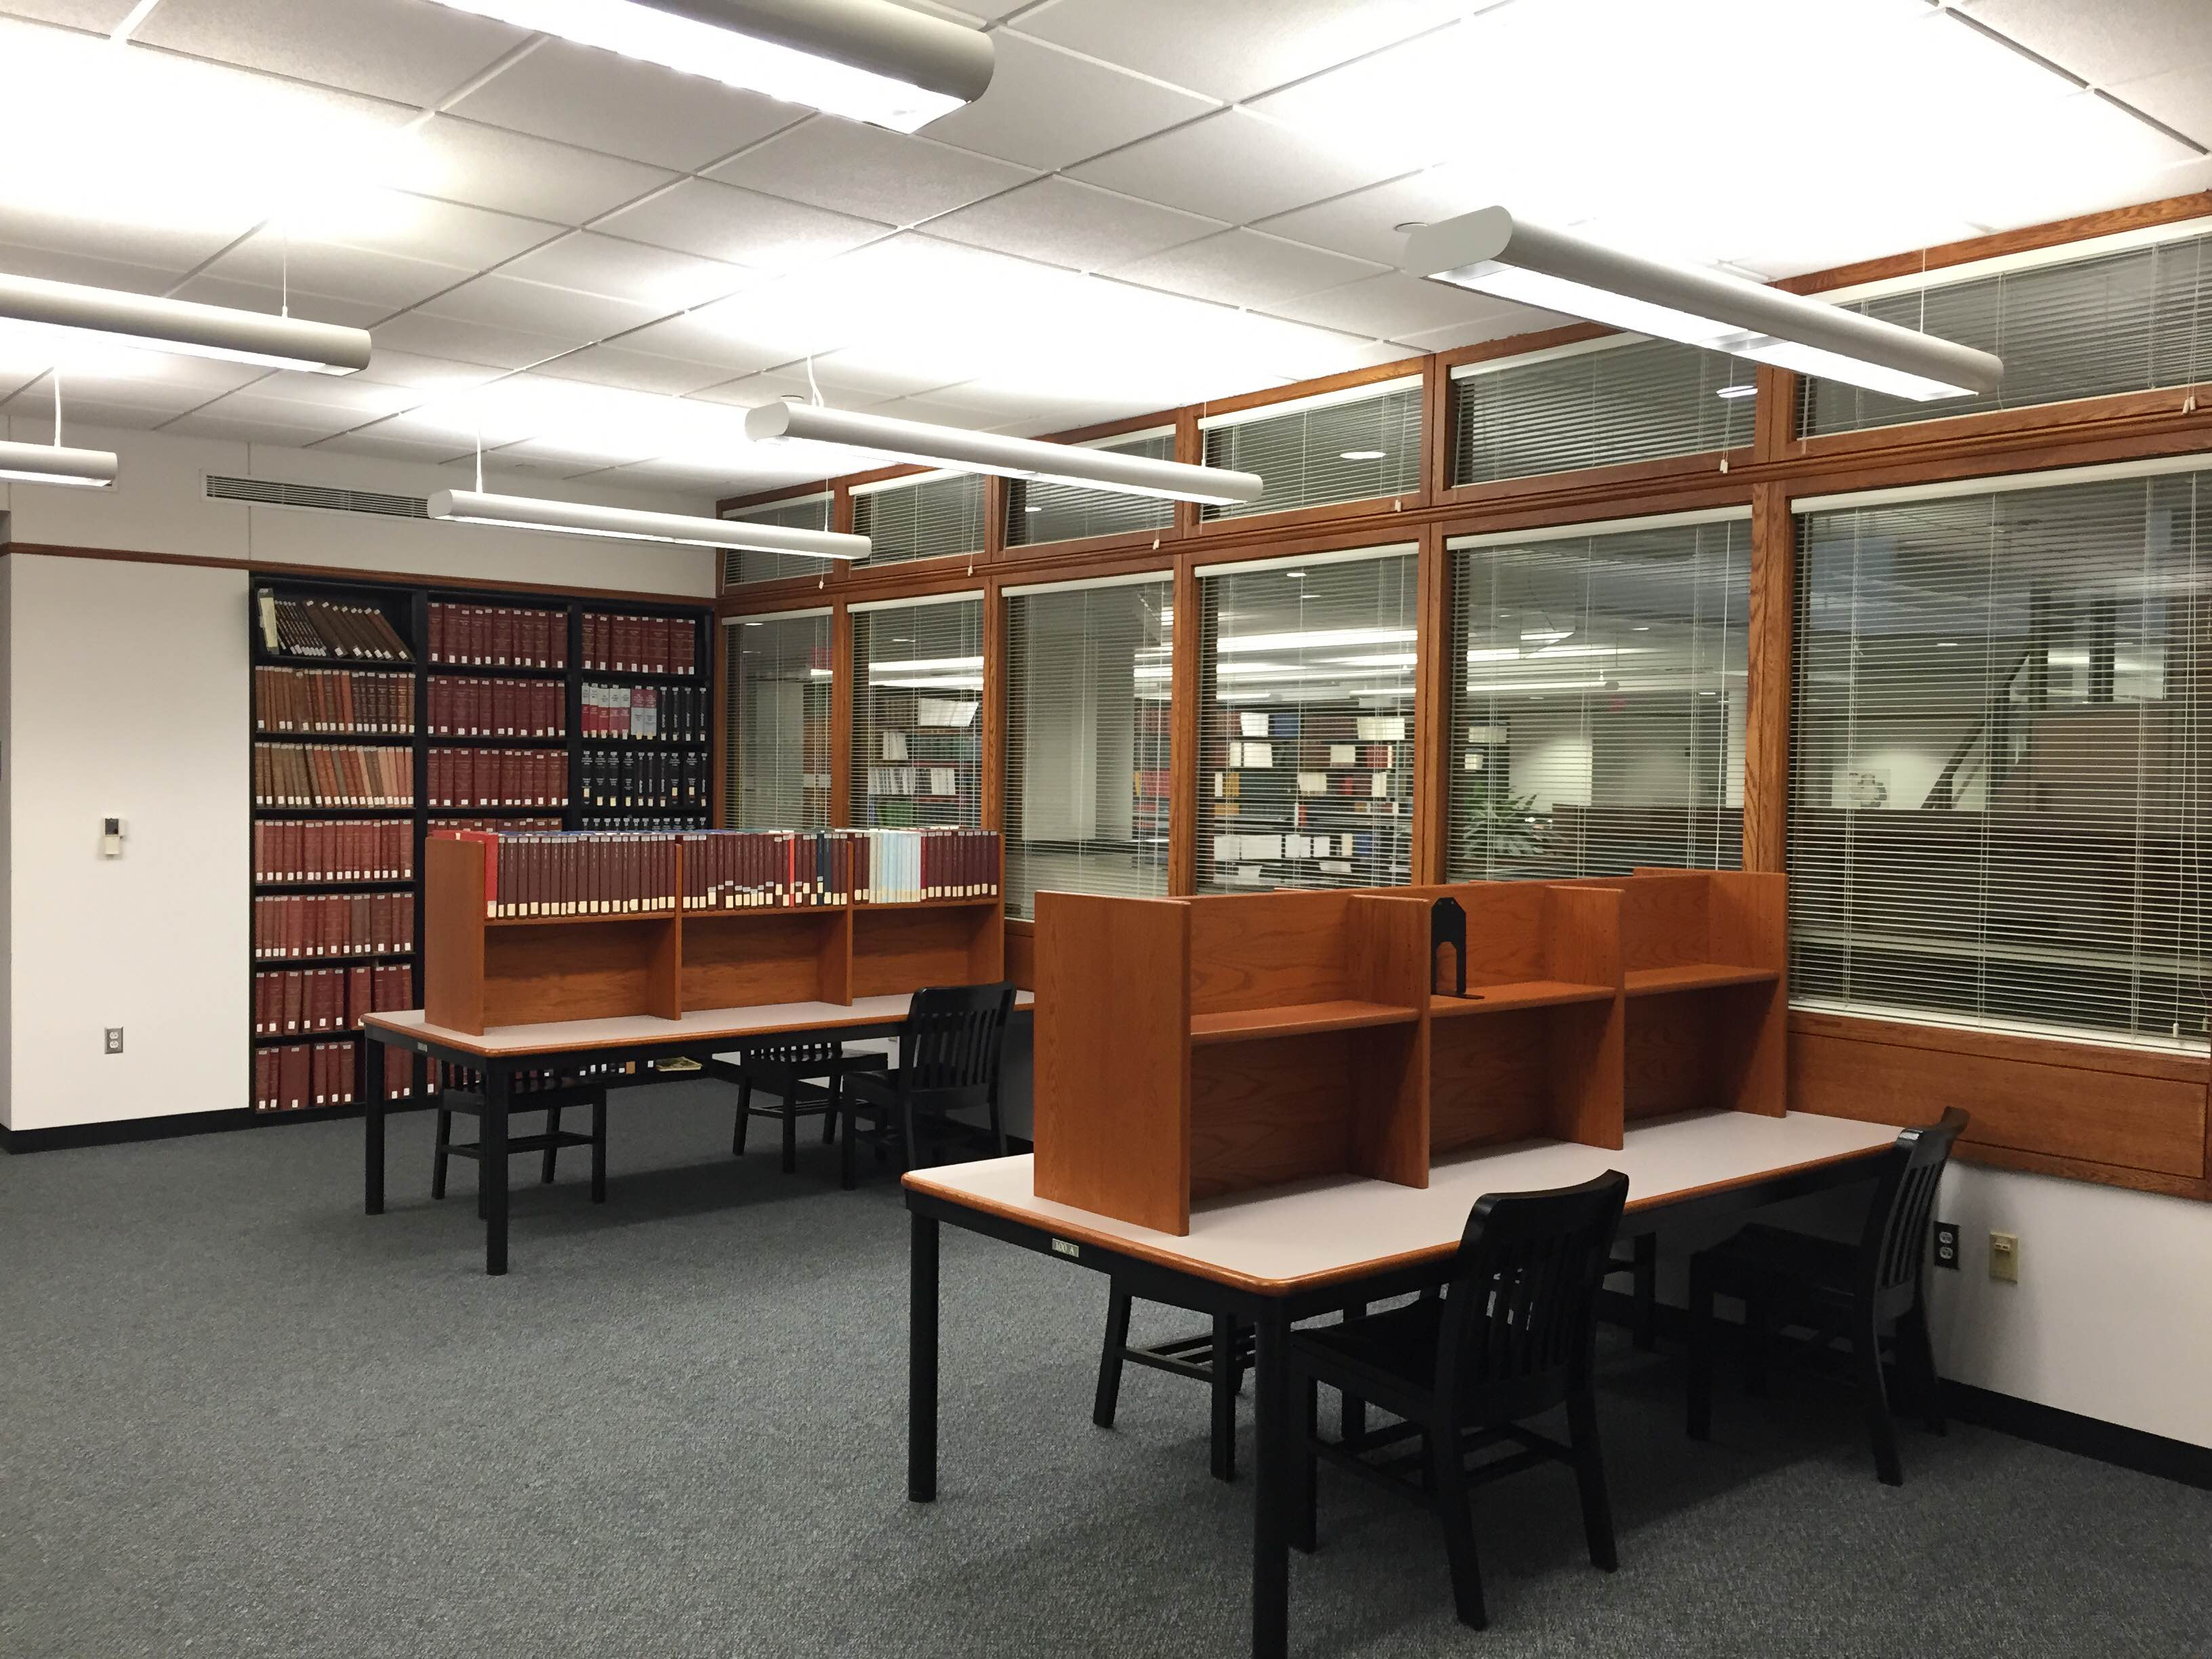 Study tables with dividers in Microforms room